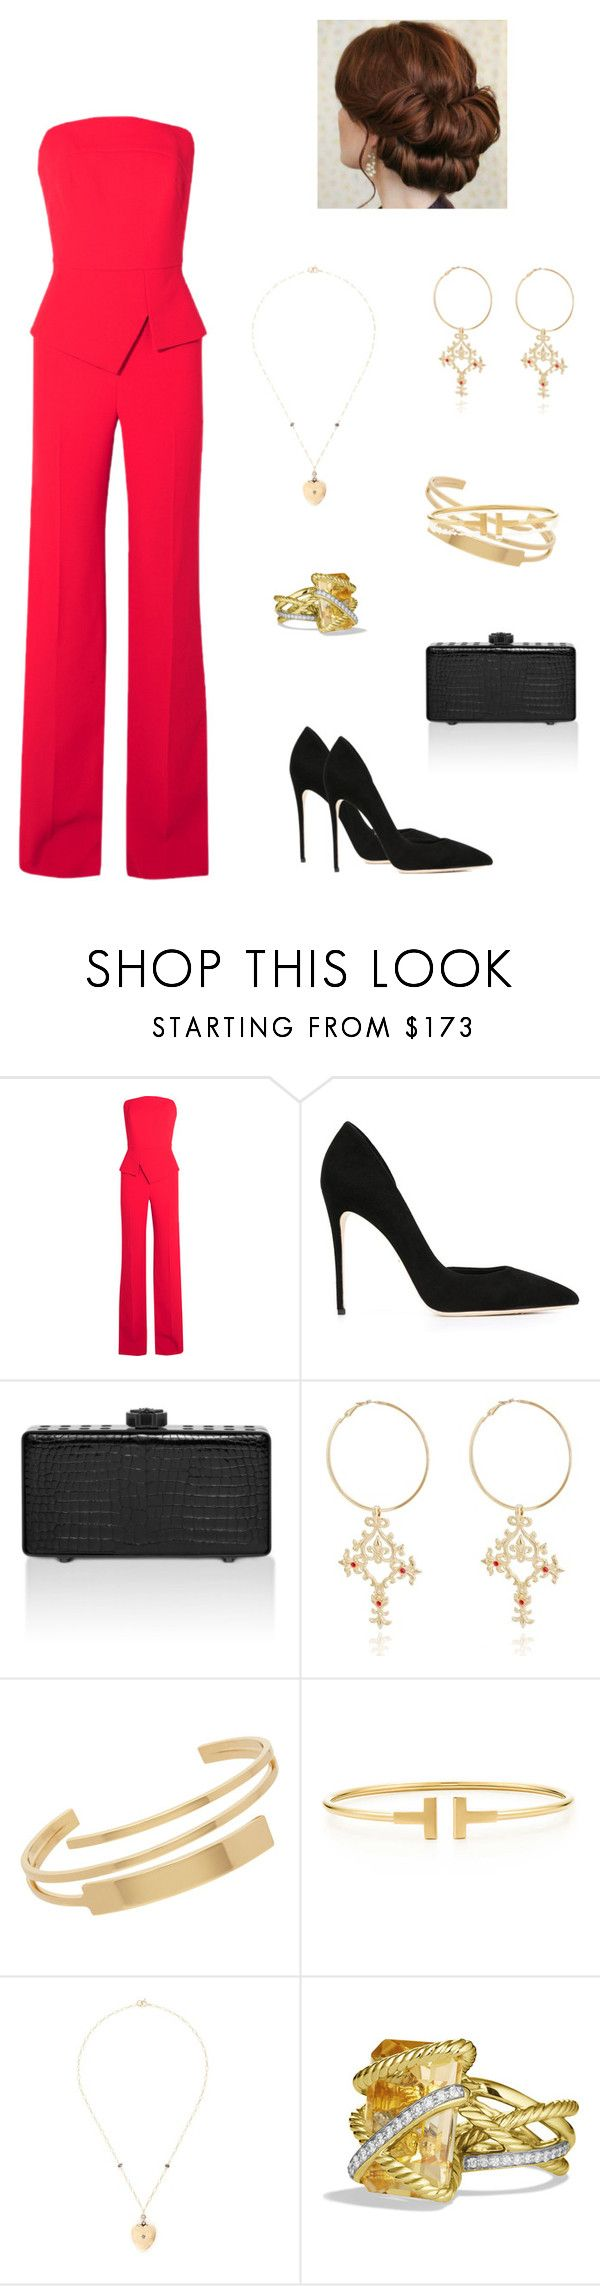 """""""."""" by autumnhuynh ❤ liked on Polyvore featuring Roland Mouret, Dolce&Gabbana, Bougeotte, Yves Saint Laurent, Tiffany & Co. and David Yurman"""